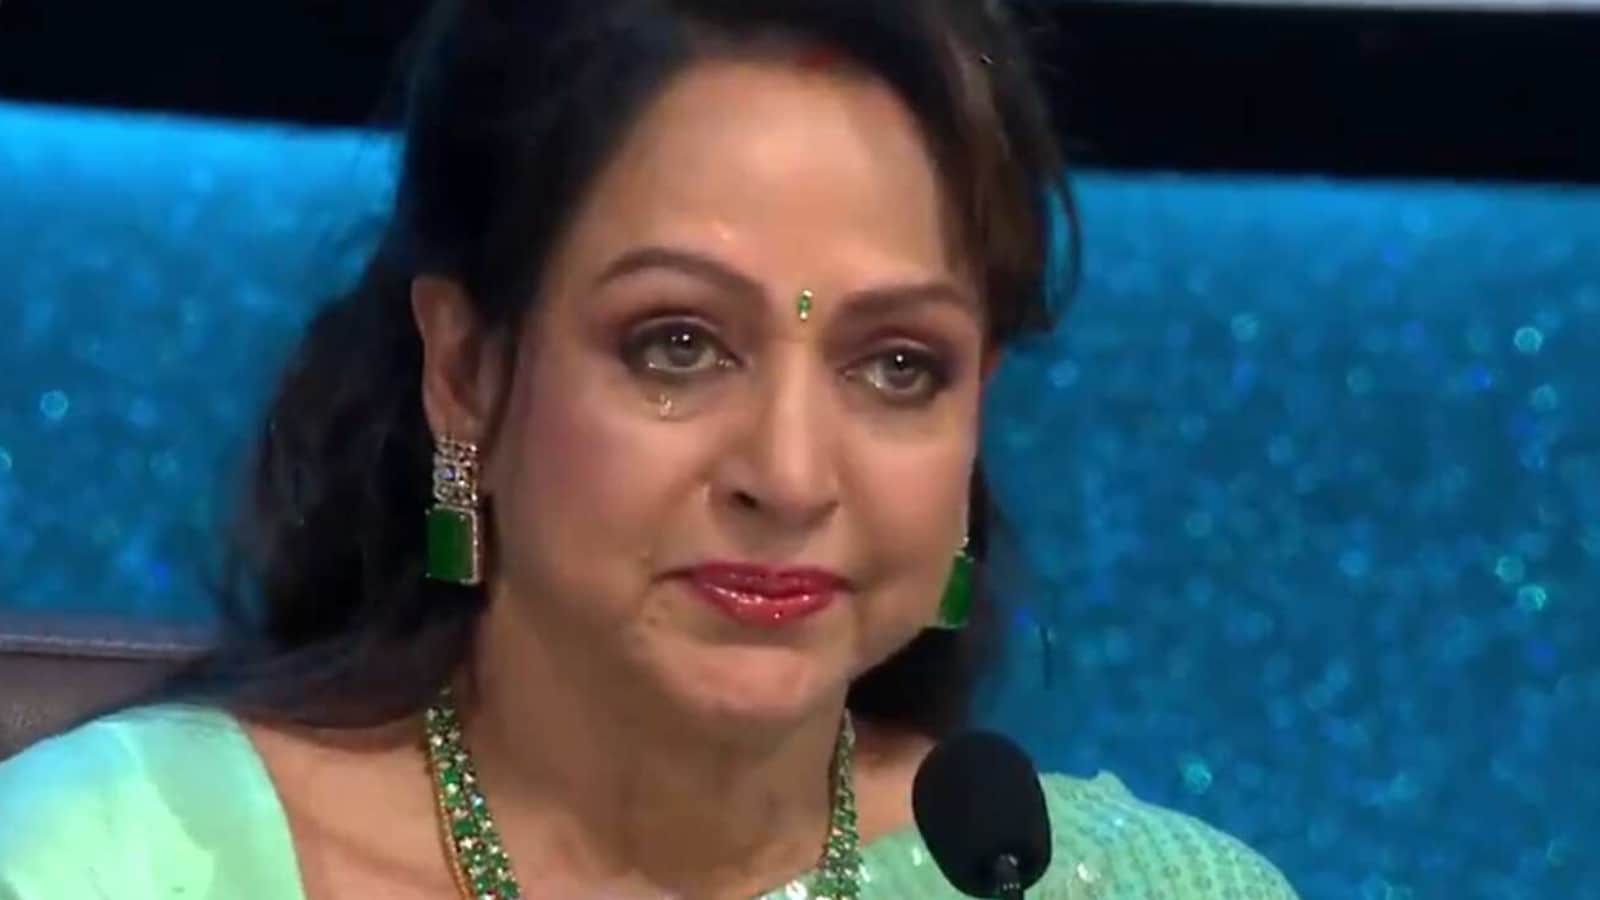 Hema Malini moved to tears by Esha Deol's heartwarming message on Indian Idol 12. Watch video - Hindustan Times